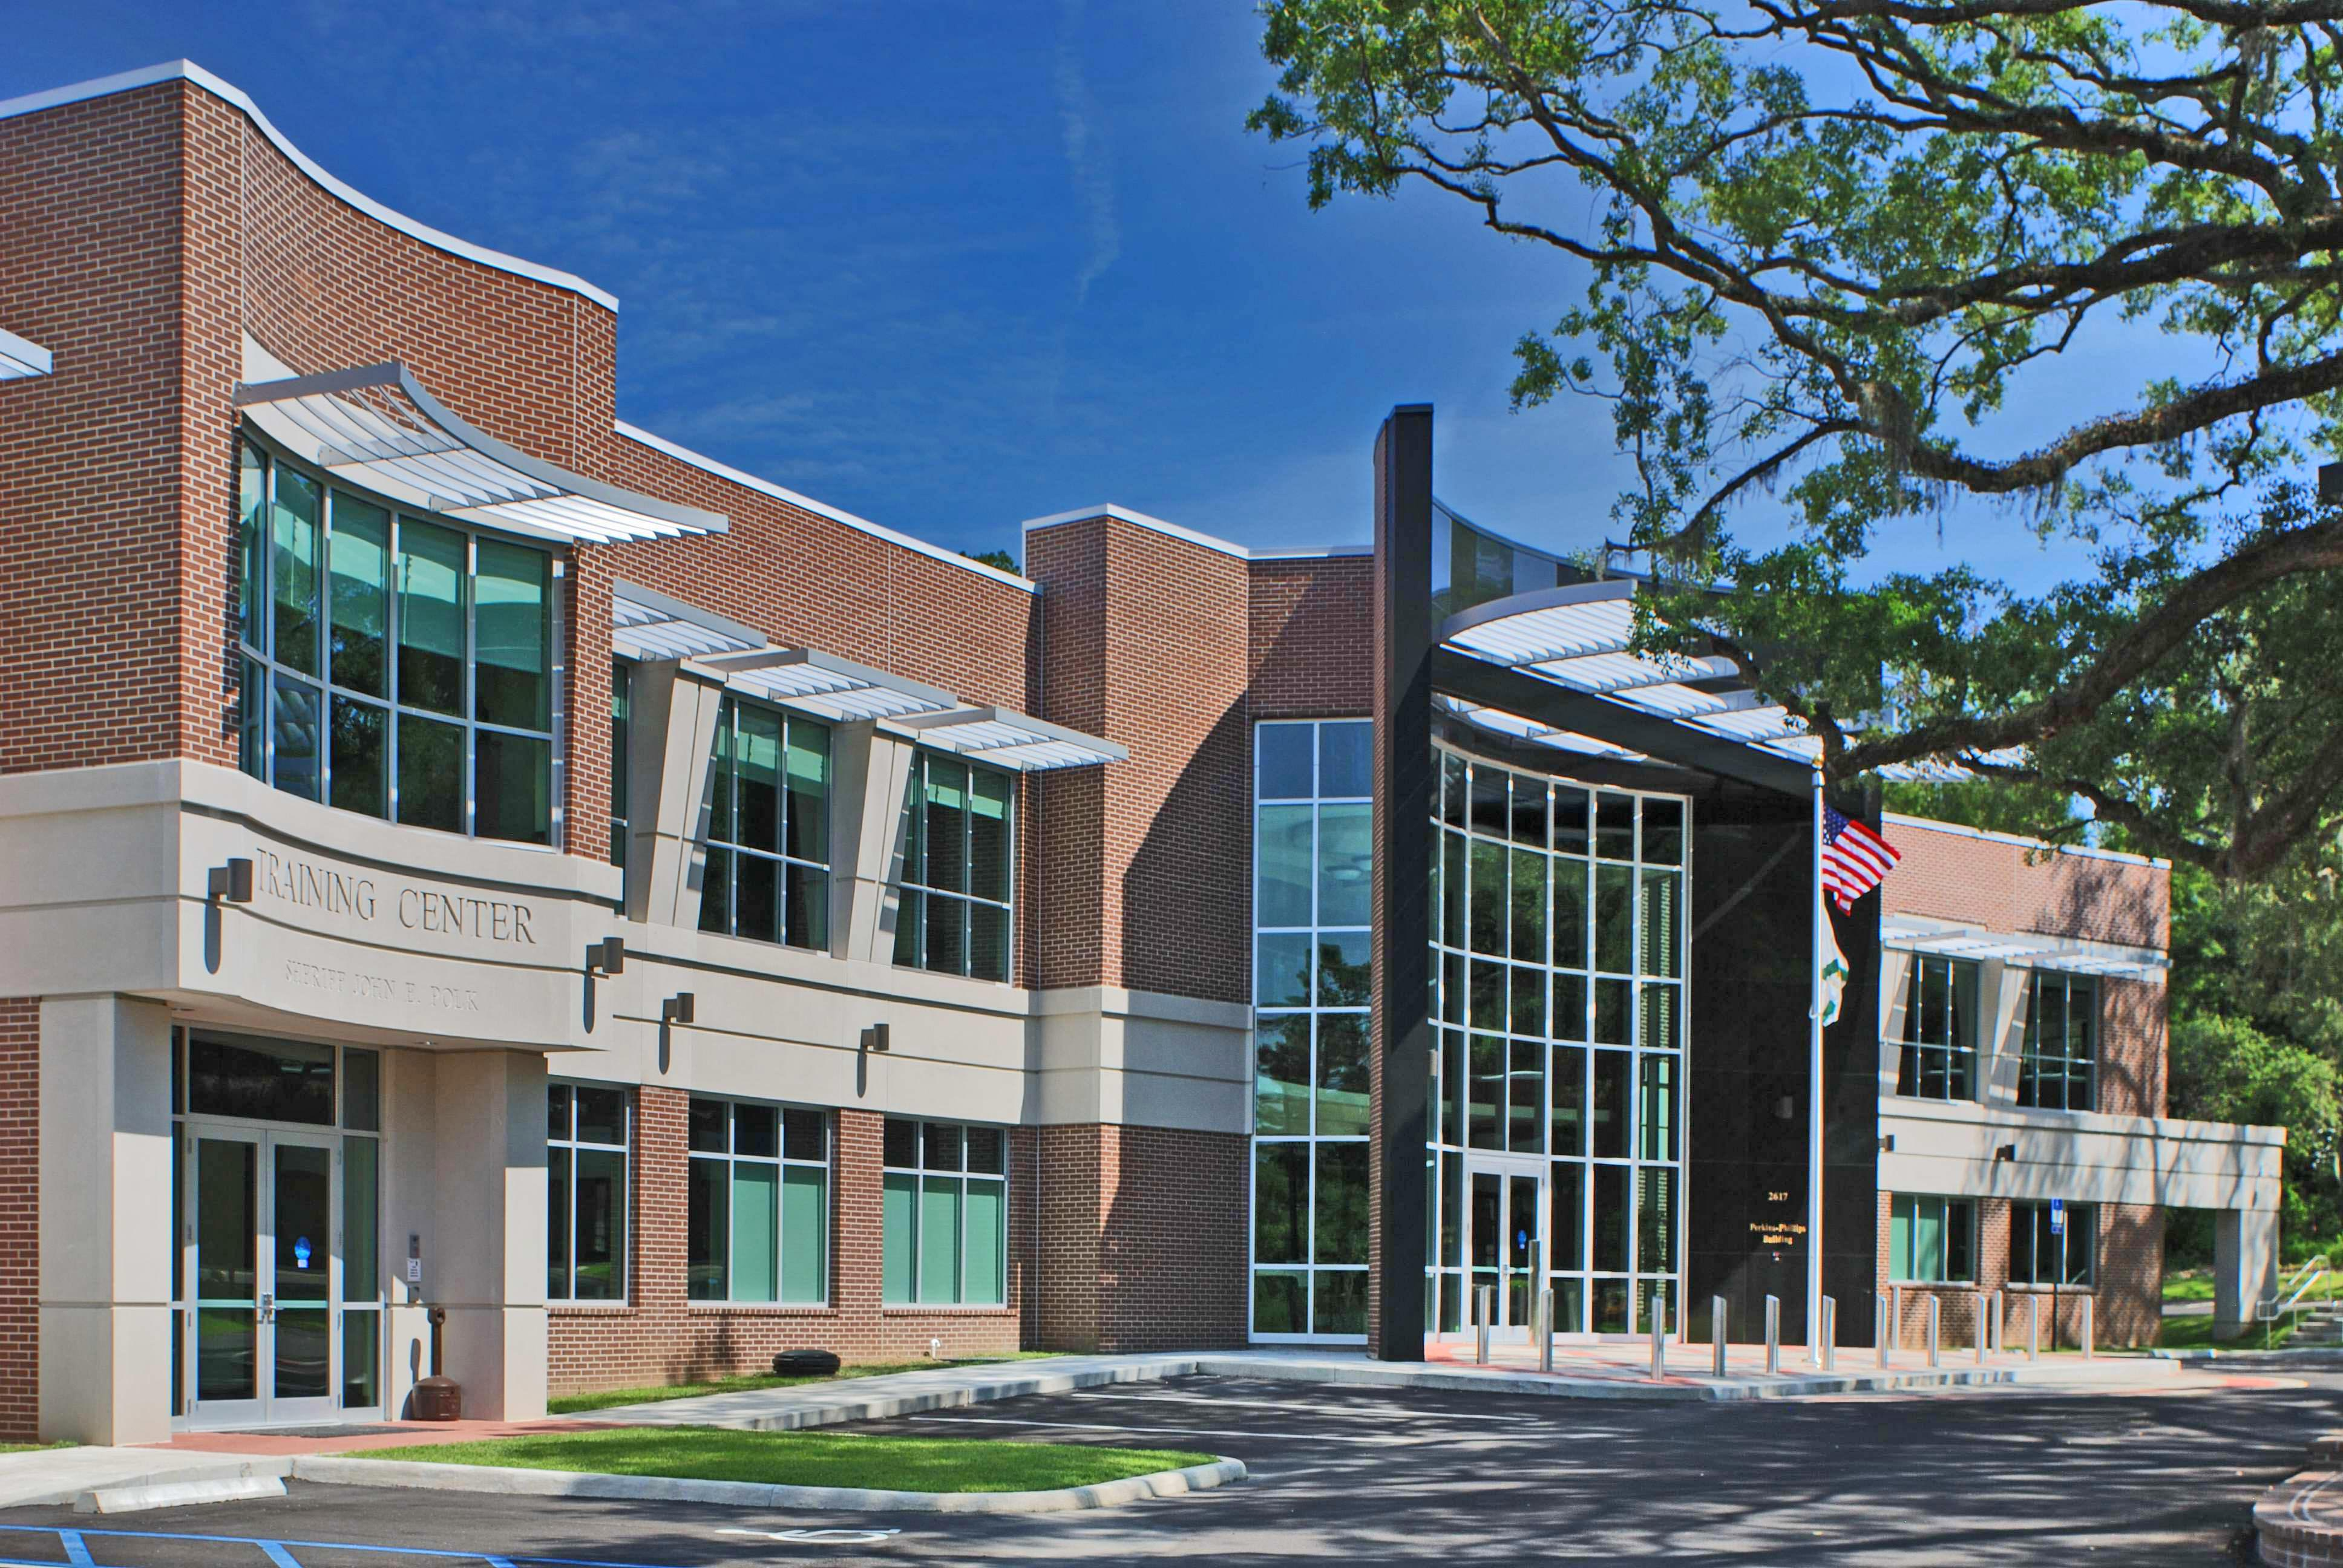 Photo of the outside of the FSA Training Center building